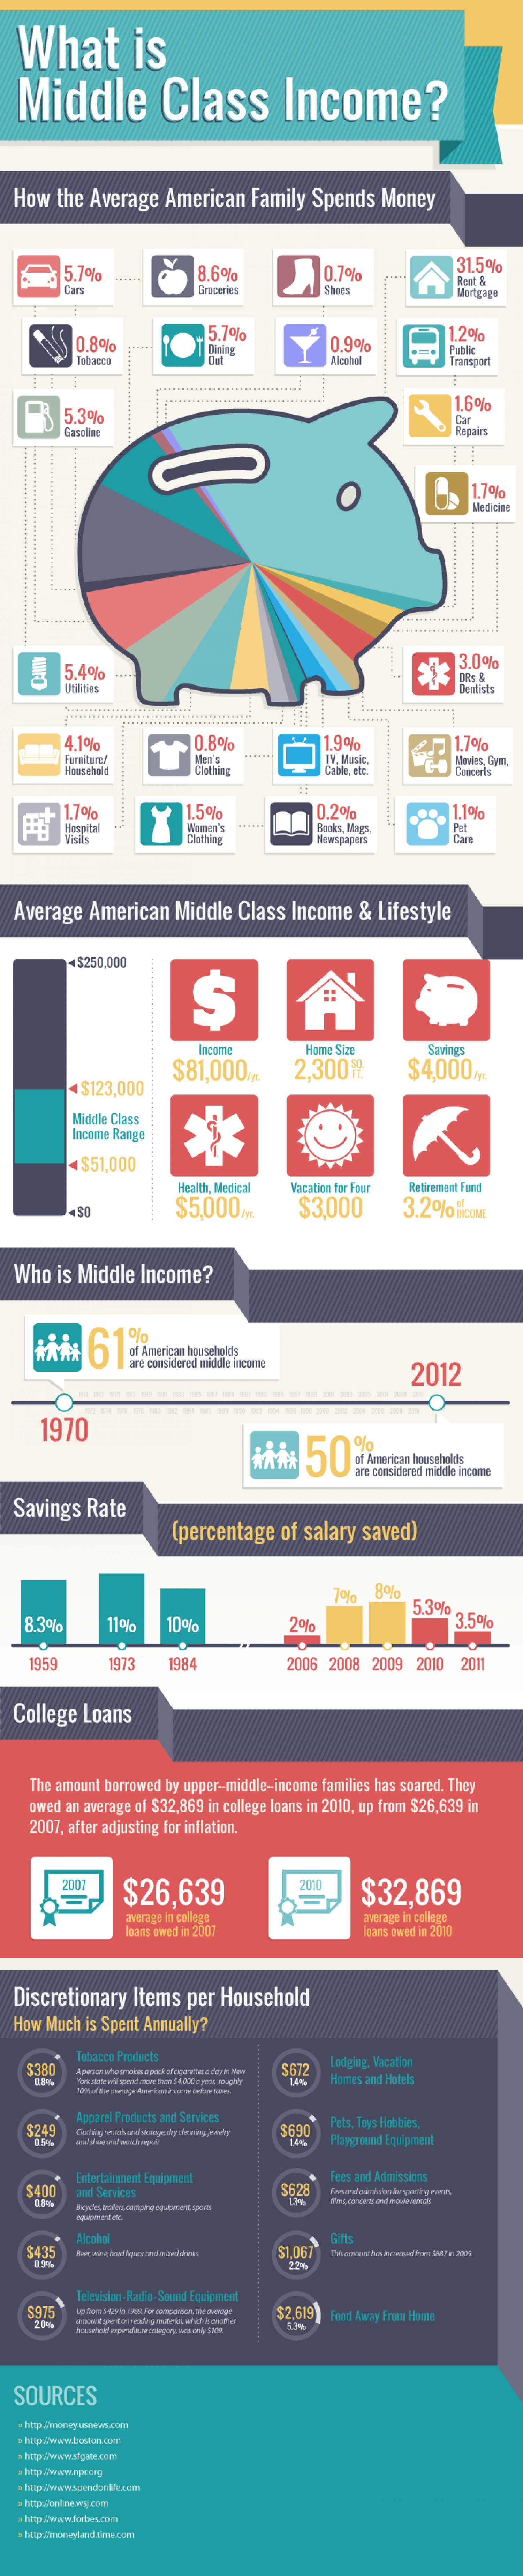 What is middle class income?